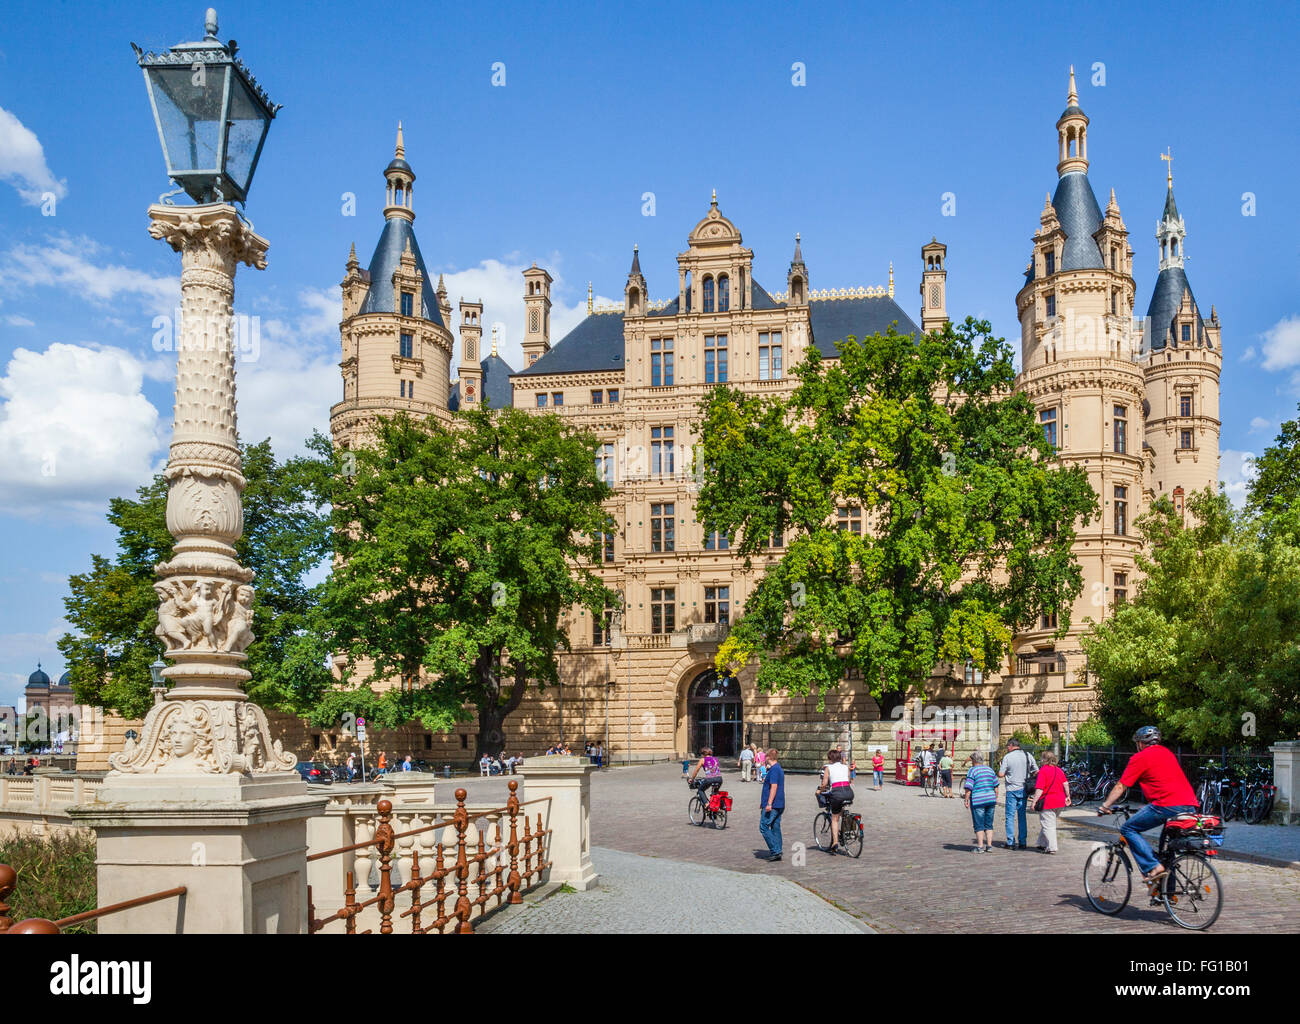 Germany, Mecklenburg-Vorpommern, view of romantic Schwerin Palace - Stock Image